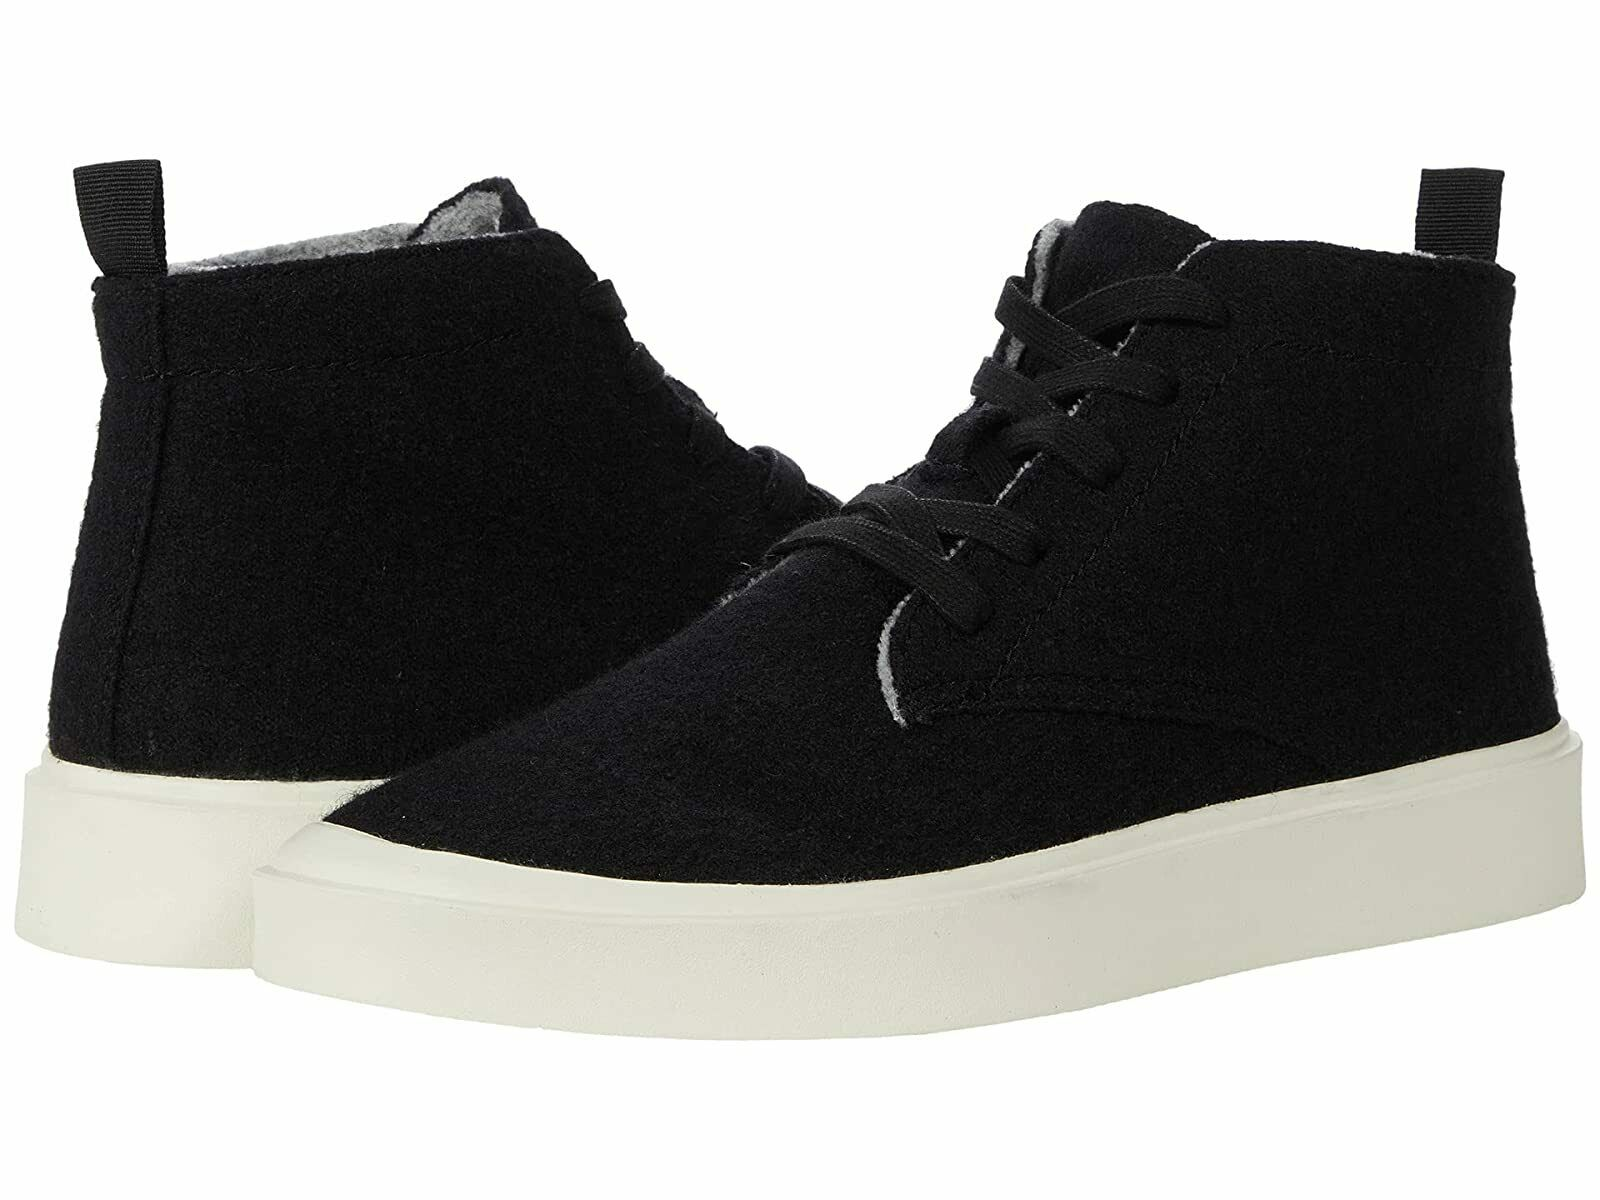 Man's Sneakers & Athletic Shoes Steve Madden Fenvay